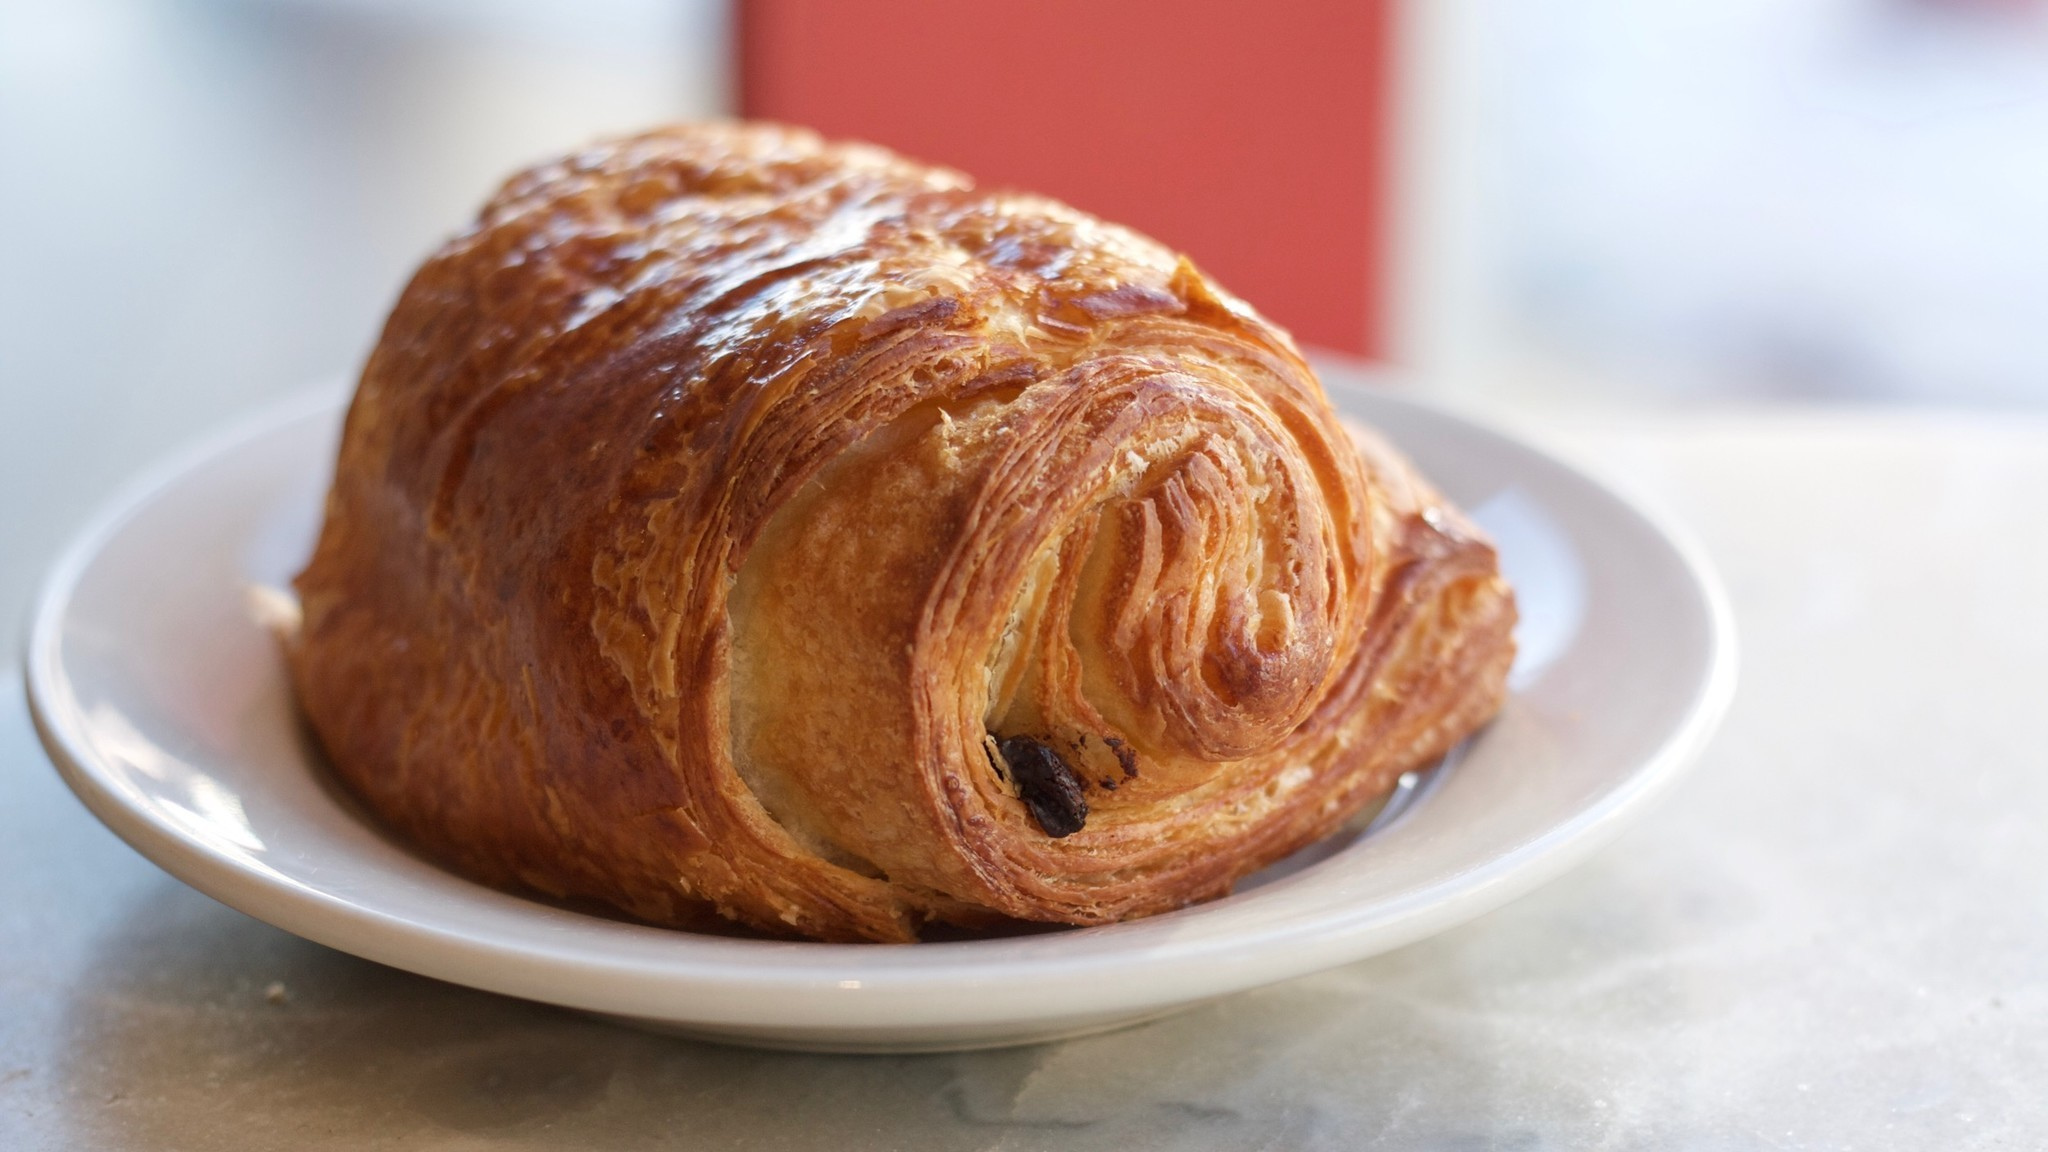 Chocolate for breakfast: The search for Chicago's best chocolate croissants, pancakes and more